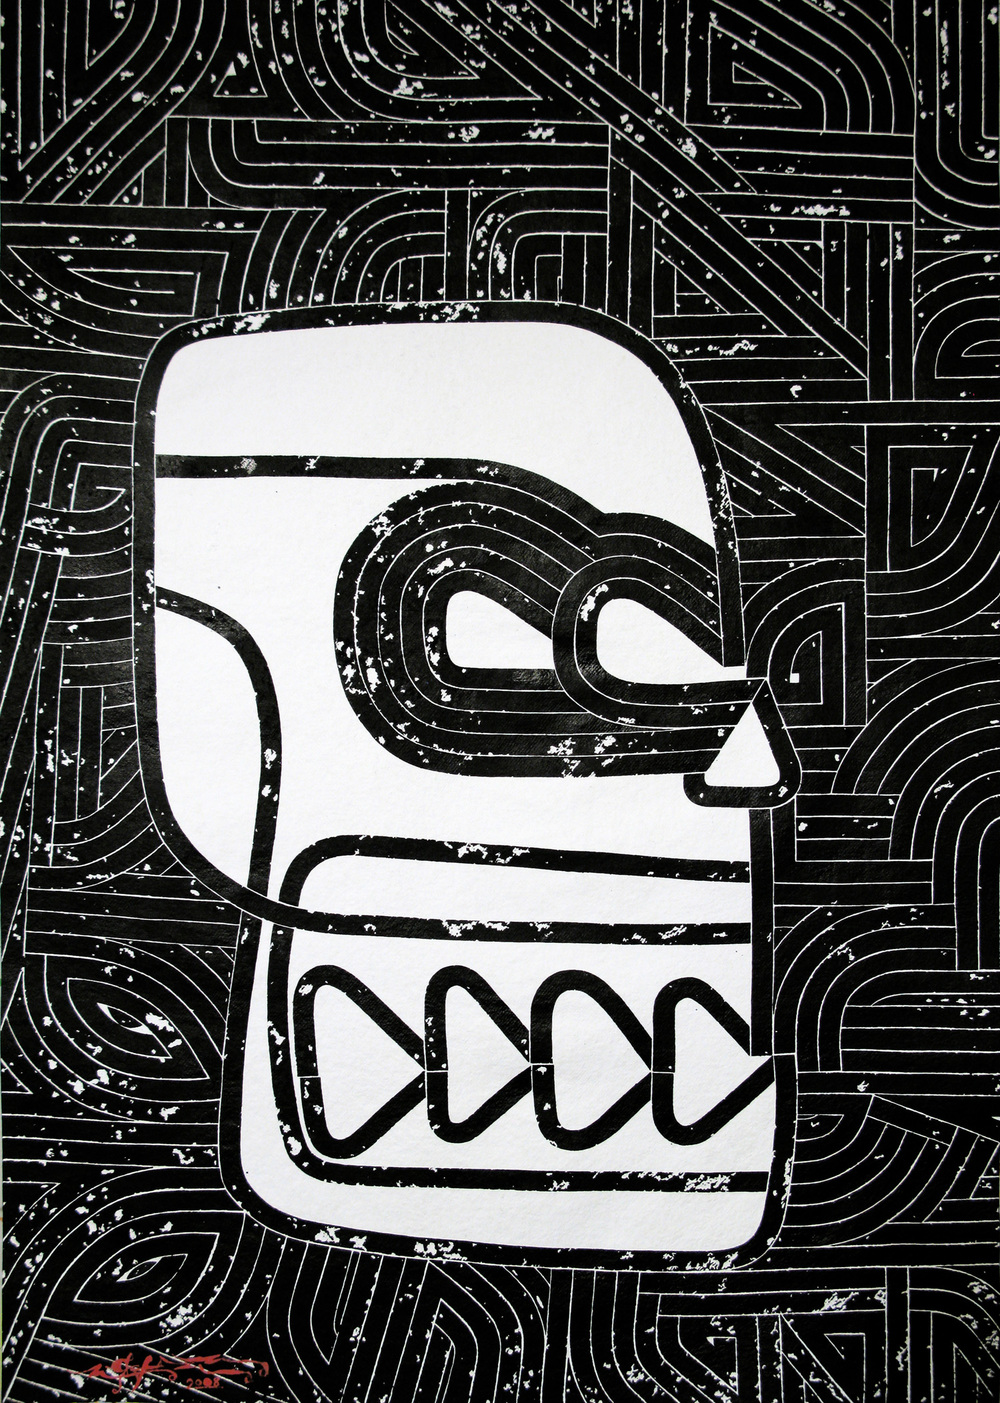 Phrenology Maximus, 2008 sumi ink on handmade paper 52 x 36 inch